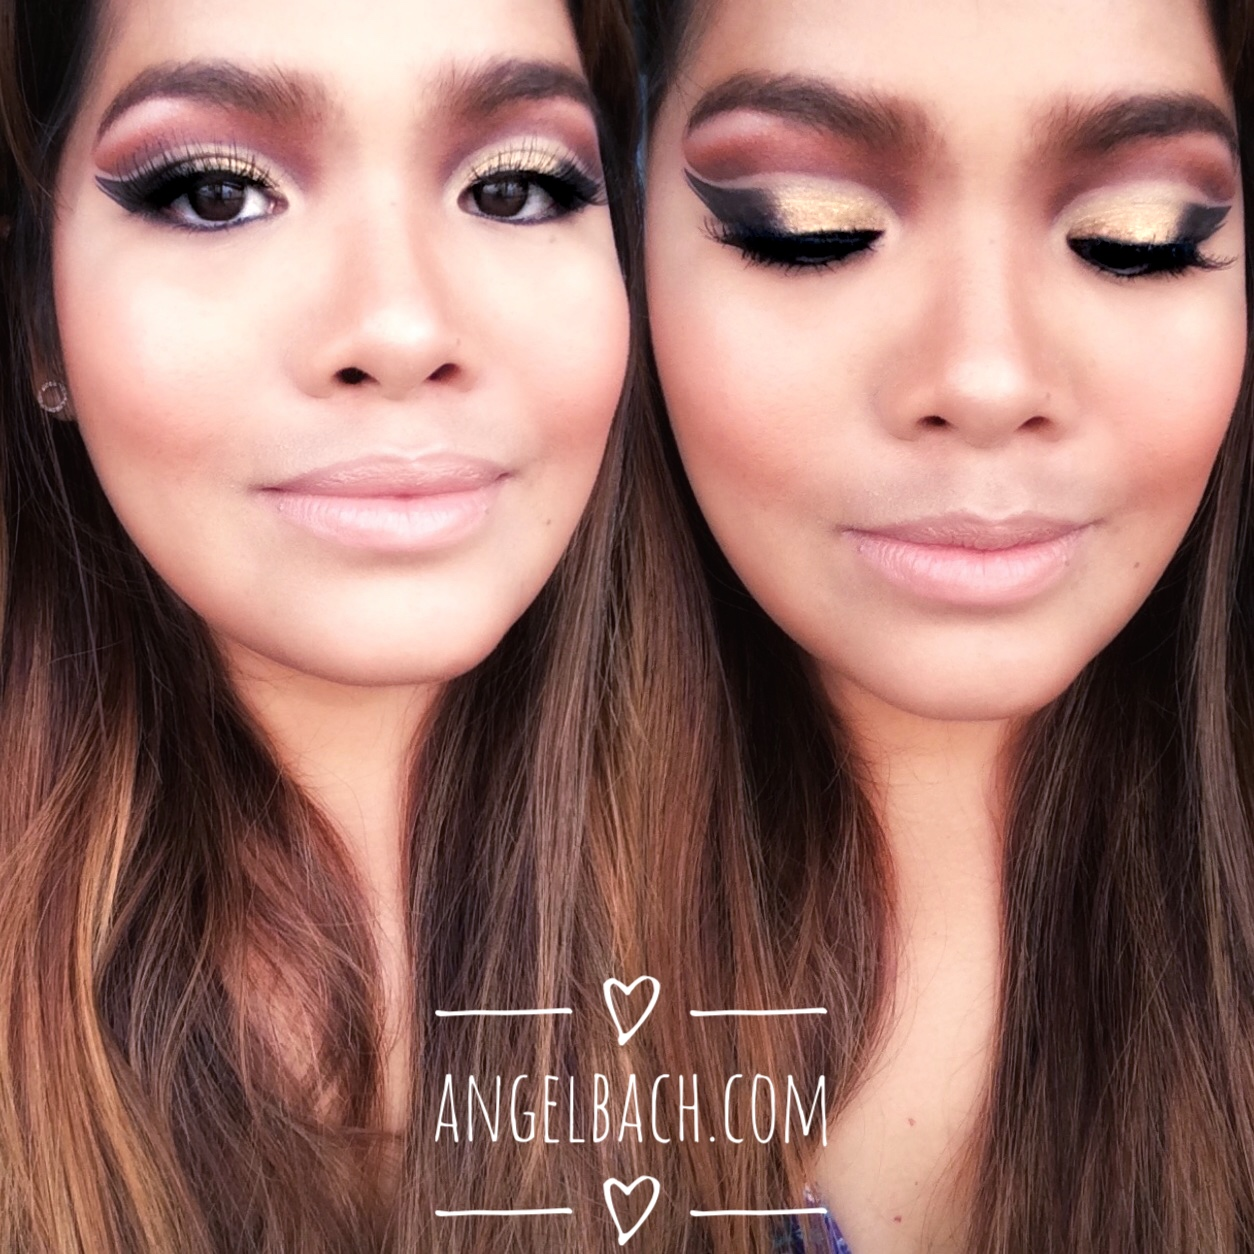 Double Cut crease, Arabic Look, Gold eyeshadow, copper eye look, nude lipstick, angel bach artistry, makeup artist